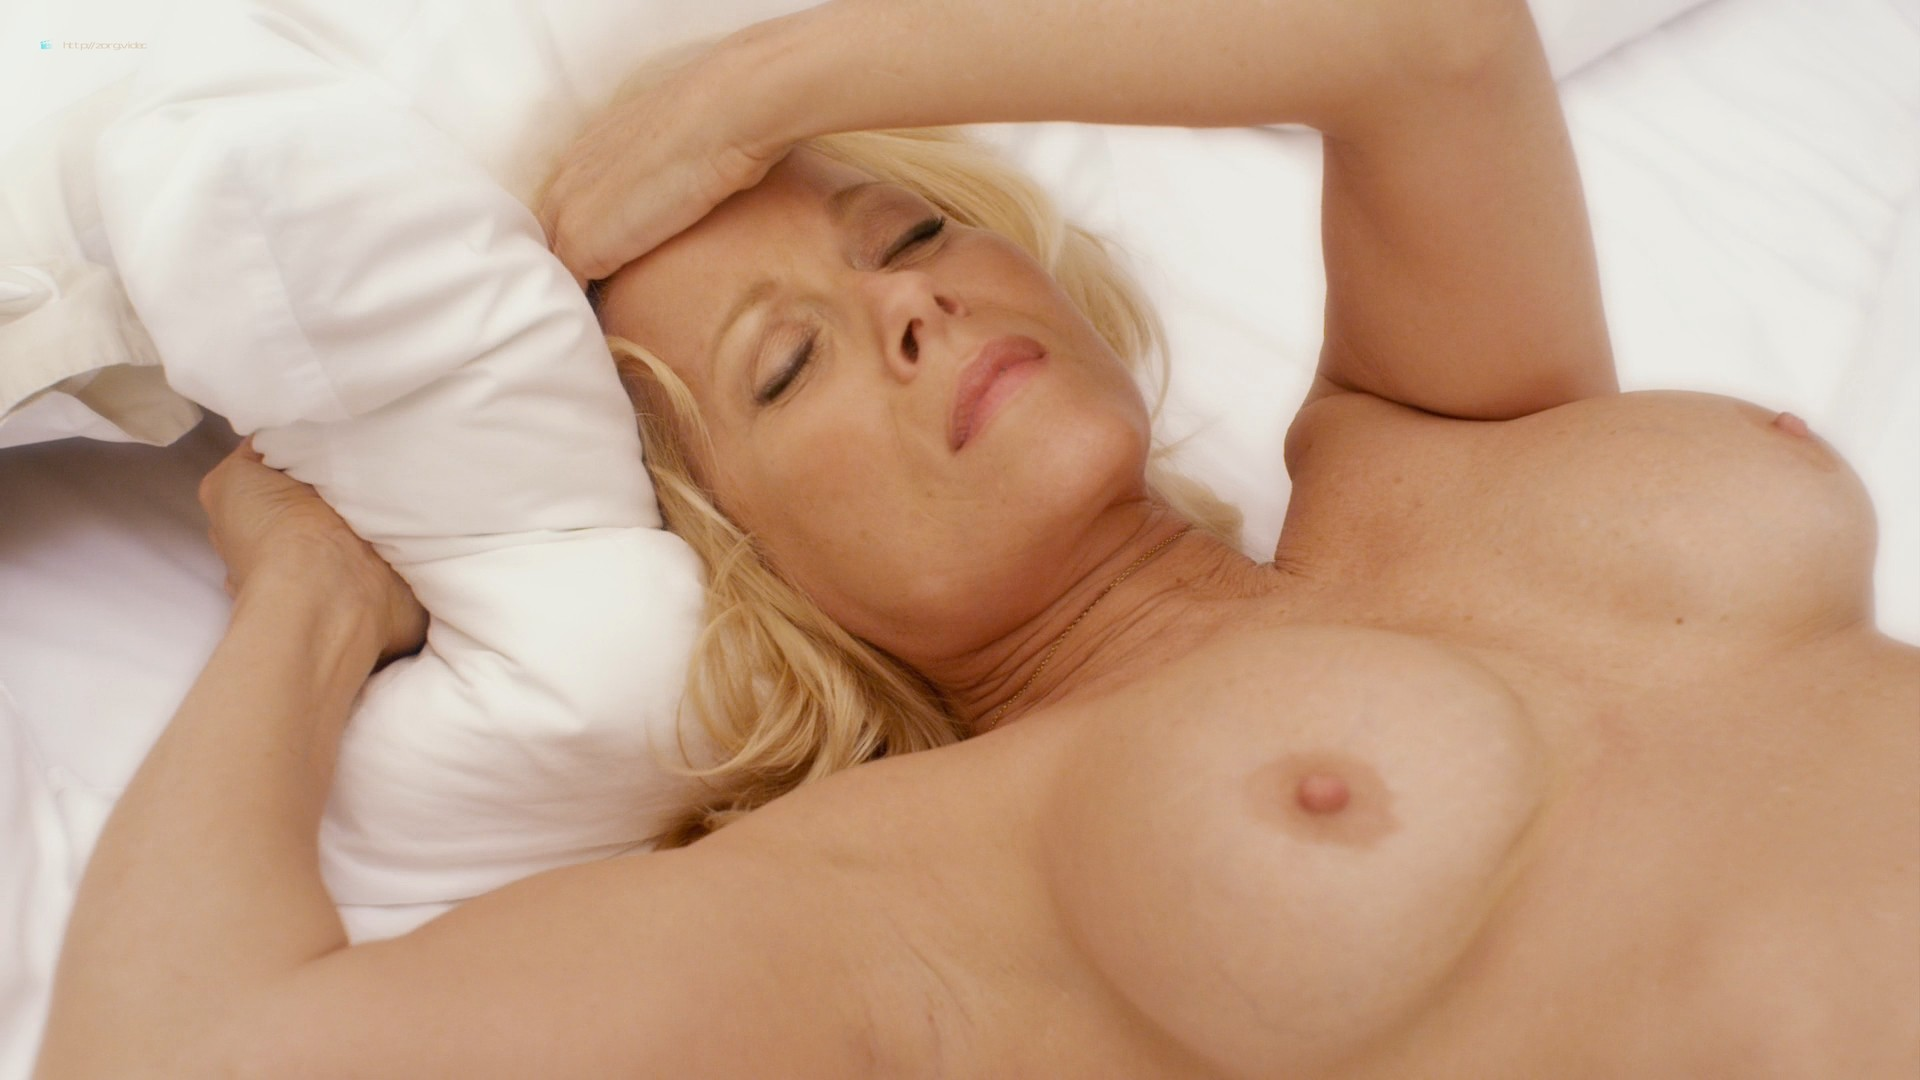 Jessica Clark nude lesbian sex with Barbara Niven nude boobs and butt - A Perfect Ending (2012) HD 1080p (8)